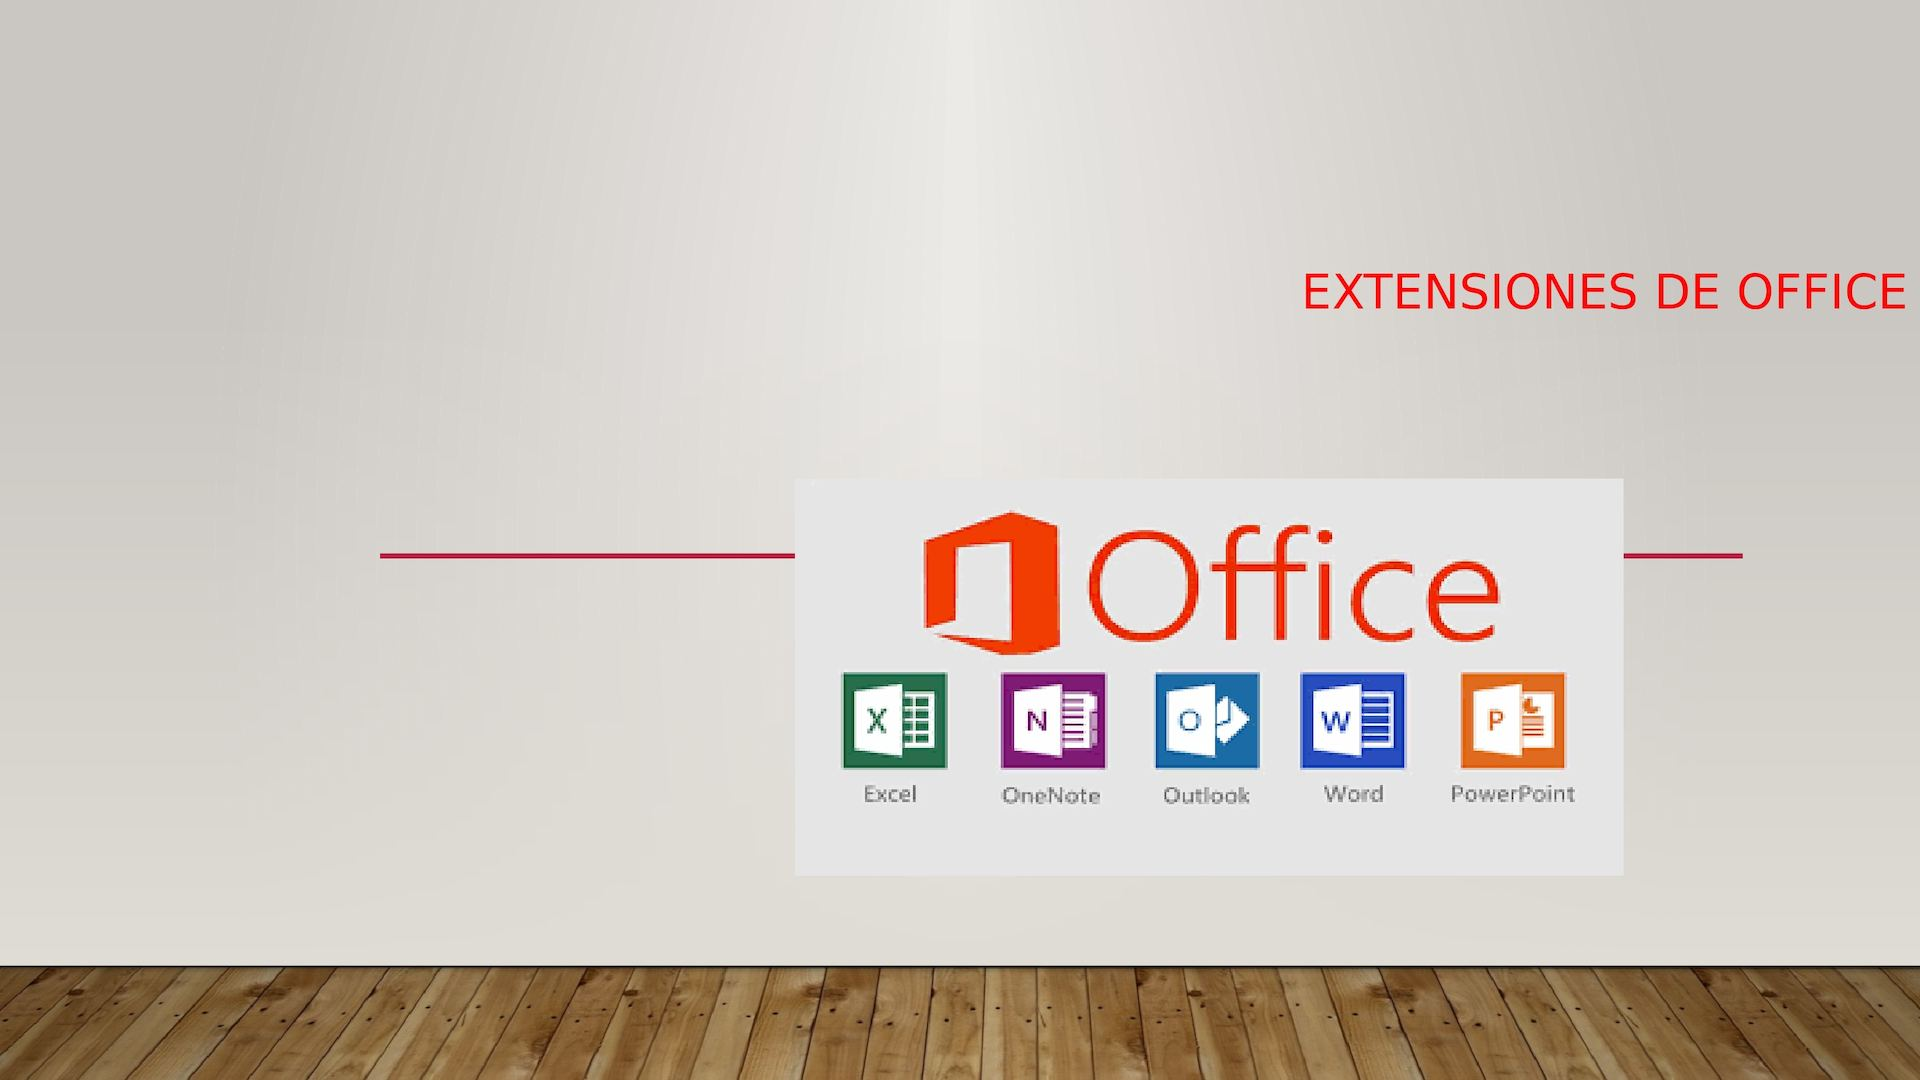 Calaméo - Extensiones De Office